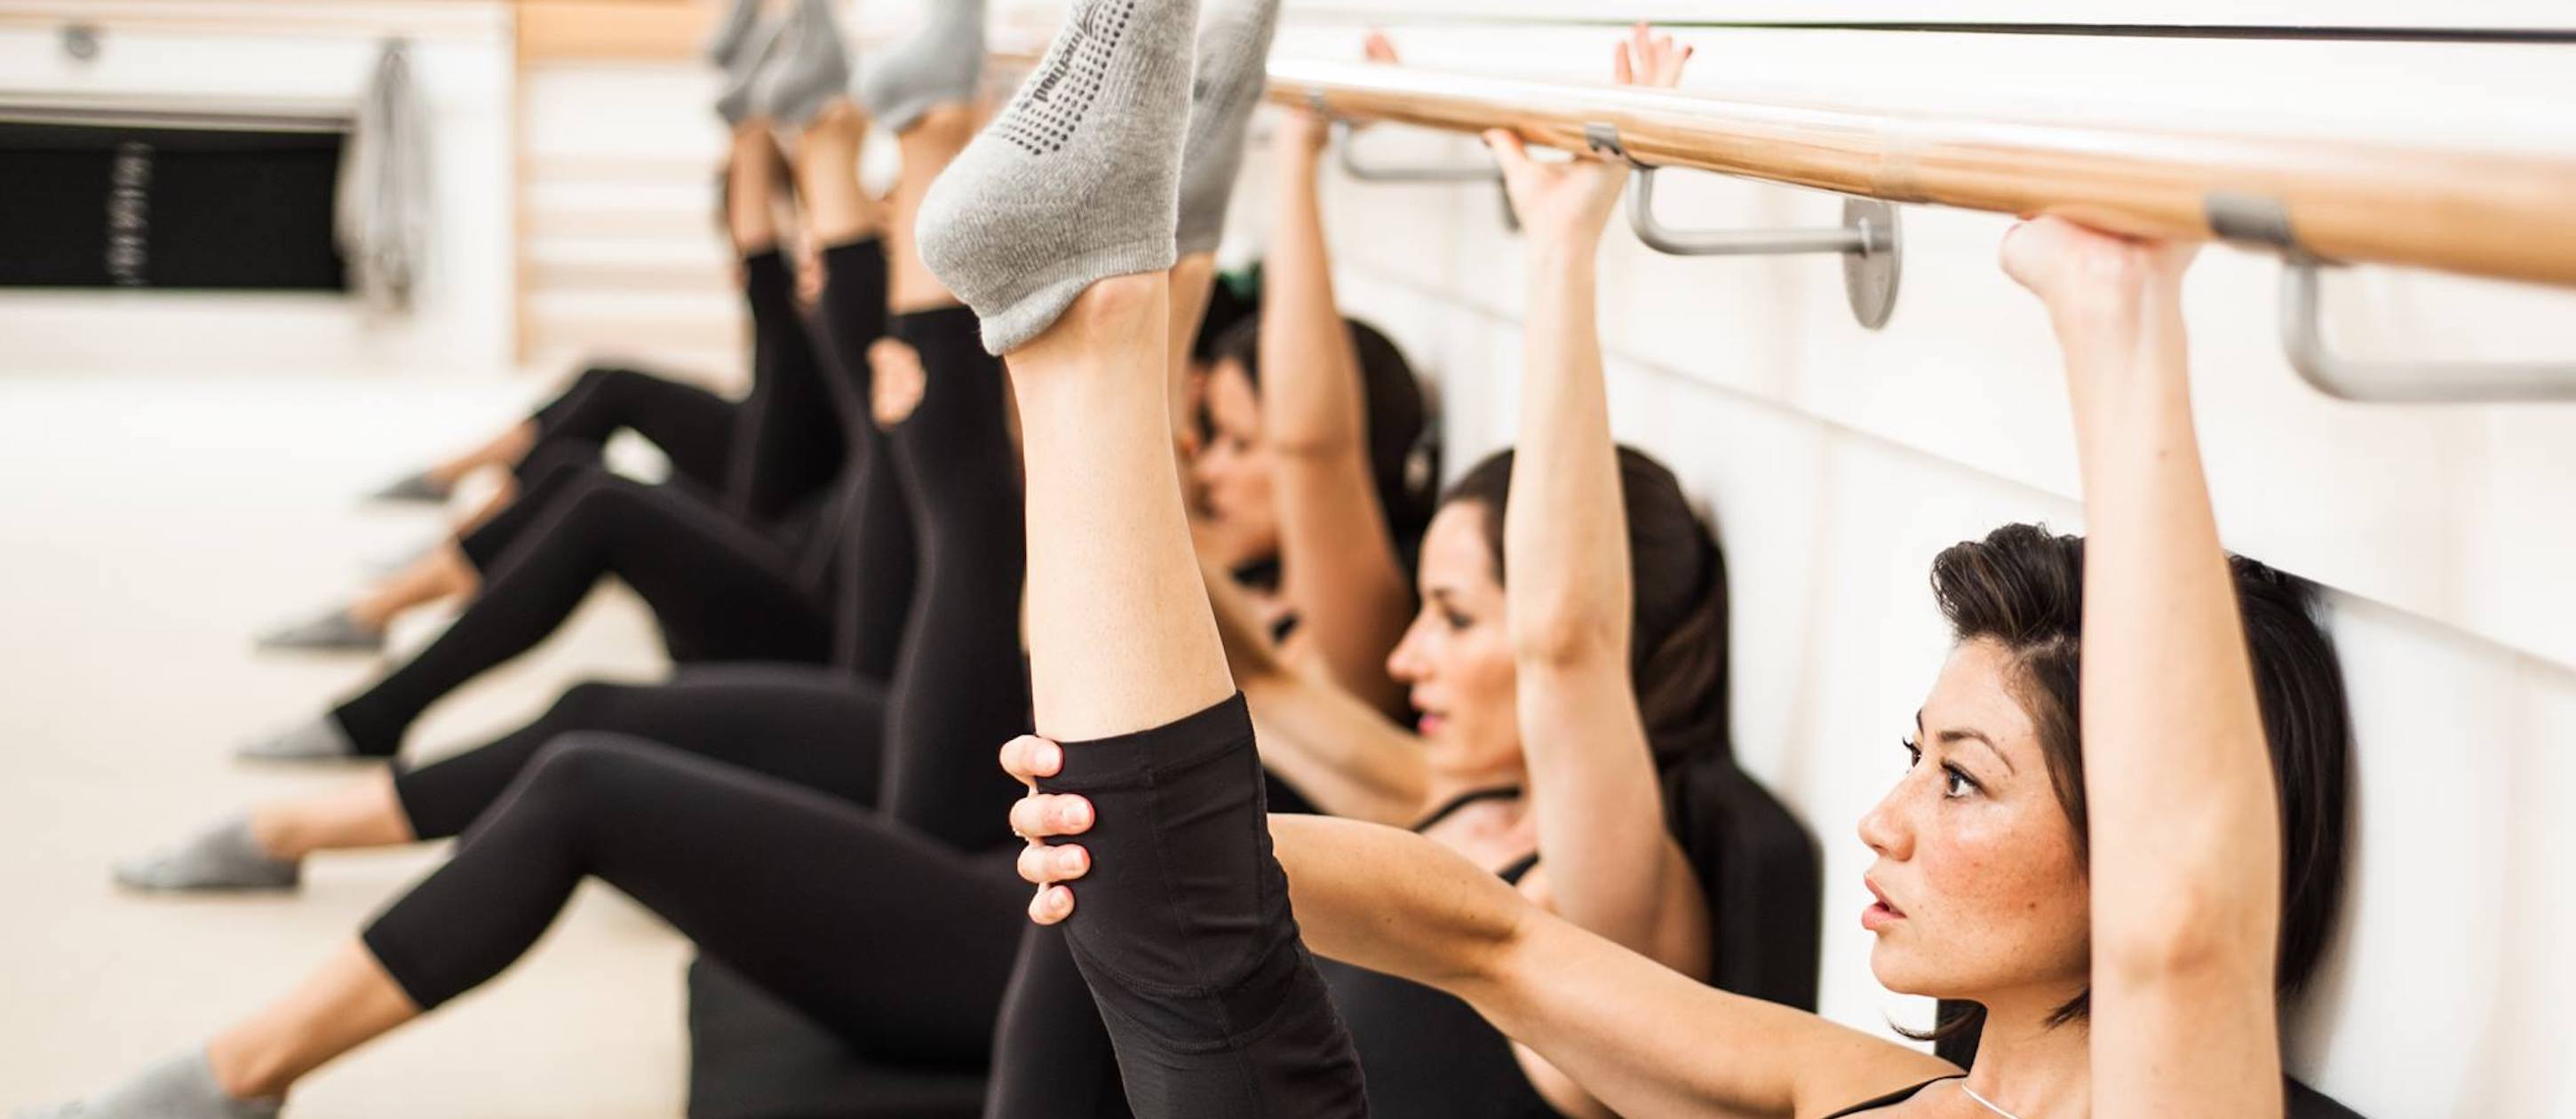 The Bar Method workout barre